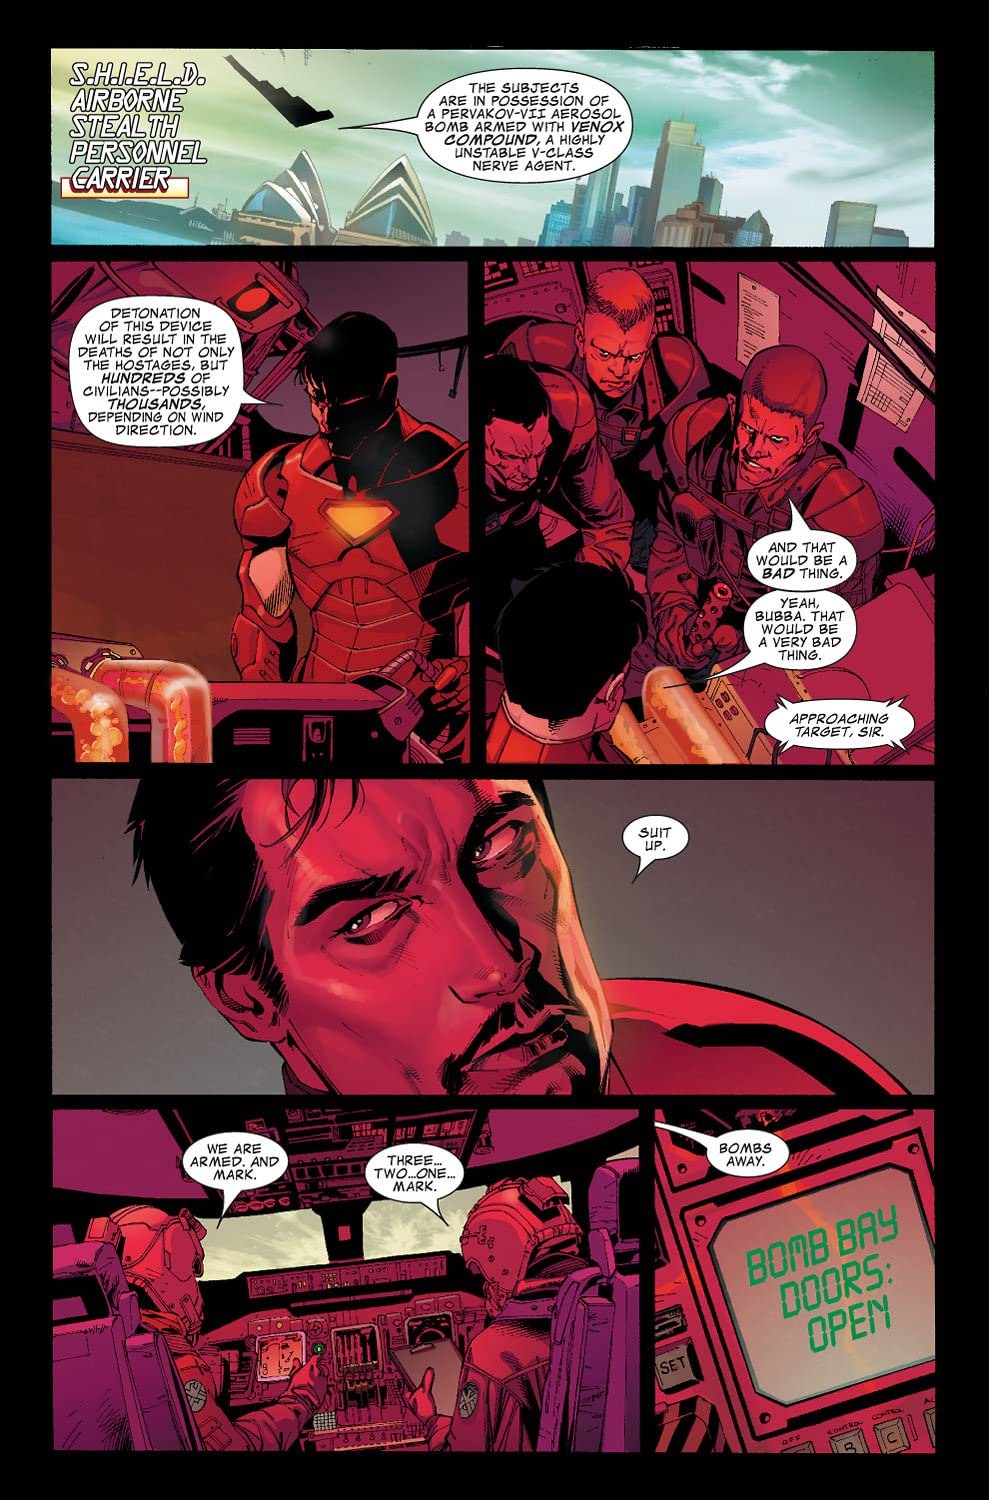 Iron Man: Director of S.H.I.E.L.D. #15